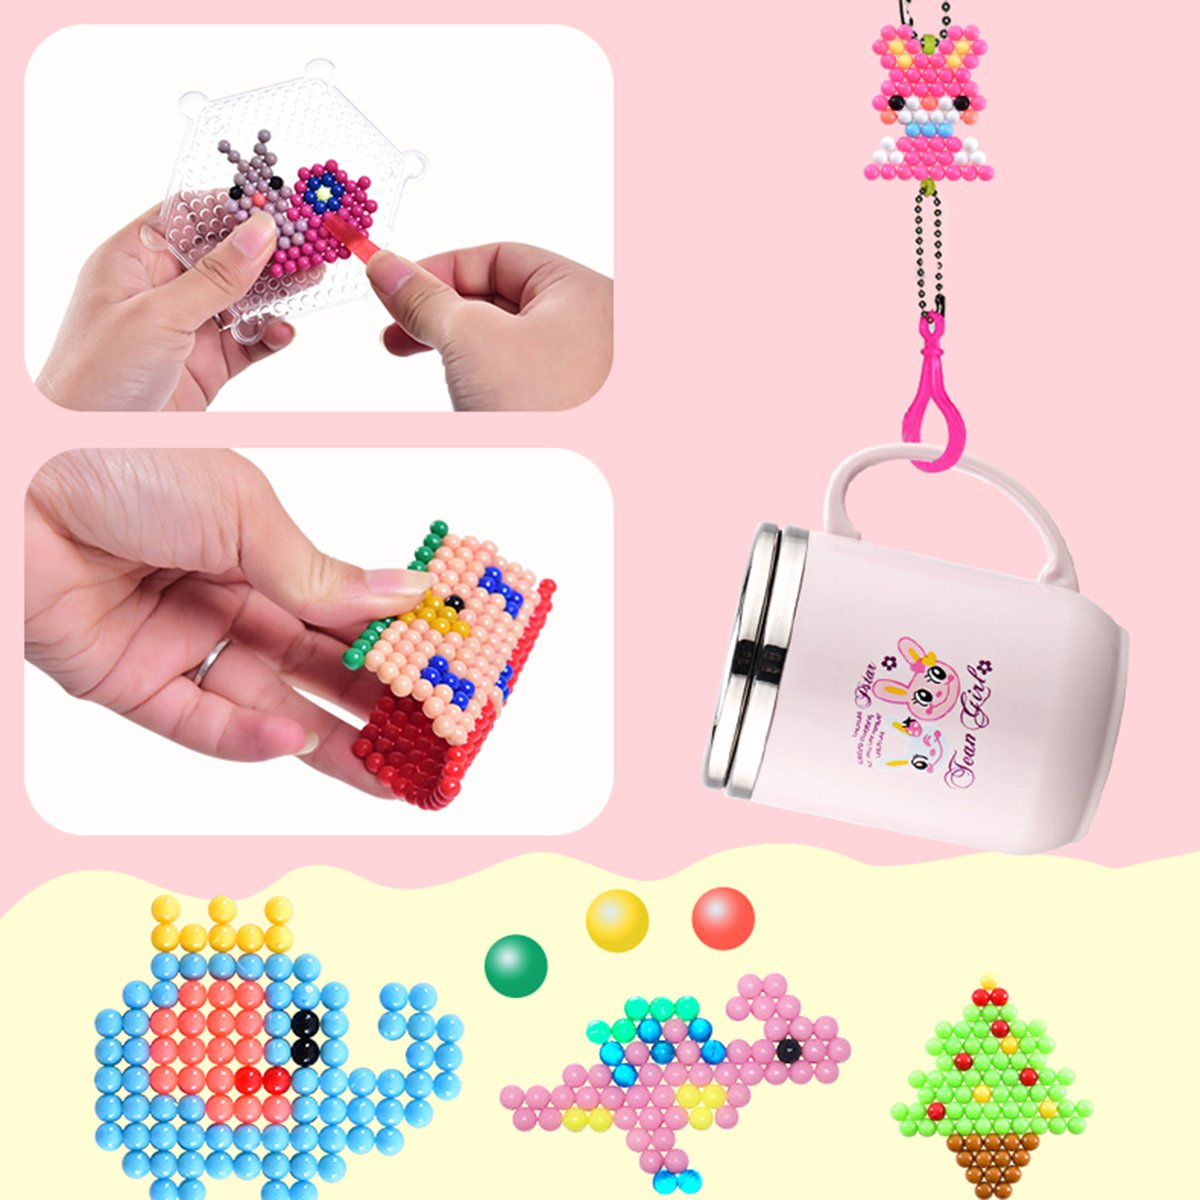 Aqua water beads Beginners Studio perler fusion Craft beads Art Crafts toys for kids non toxic with bead palette, layout table, bead pen, bead peeler, sprayer, template sheets -15 colors(2400pcs) by QIAONIUNIU (Image #7)